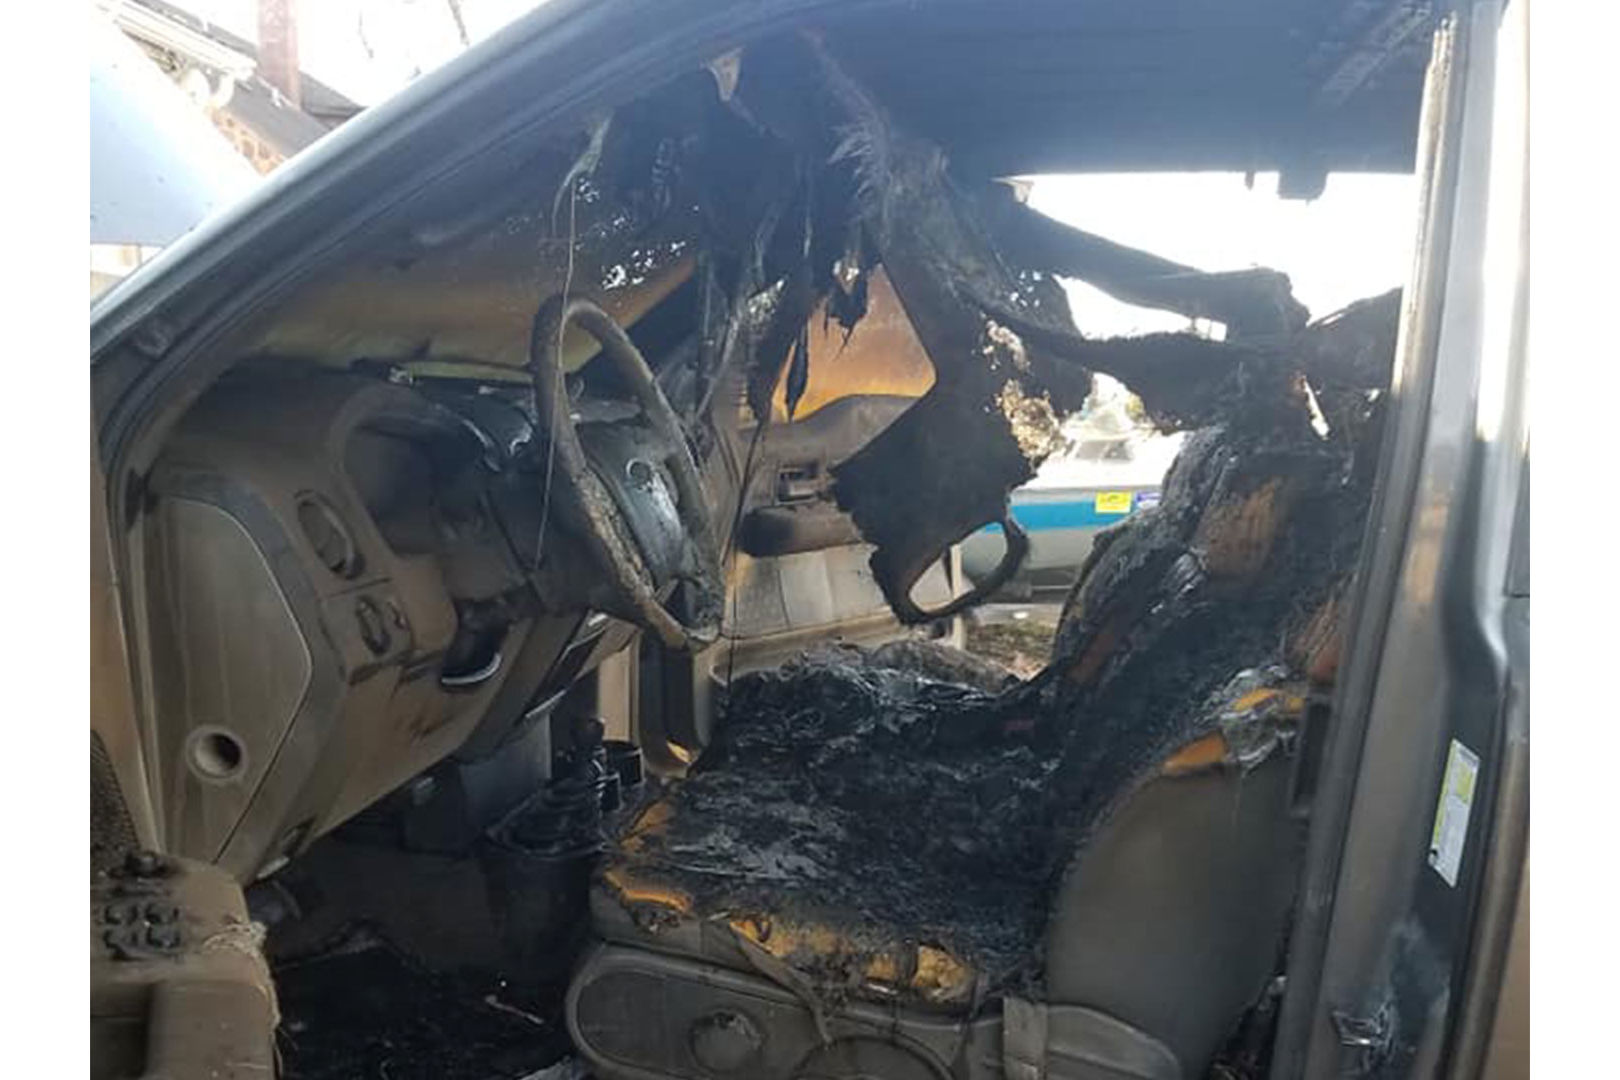 Oklahoma Single Dad's Bible Emerges Unscathed from Dramatic Car Fire